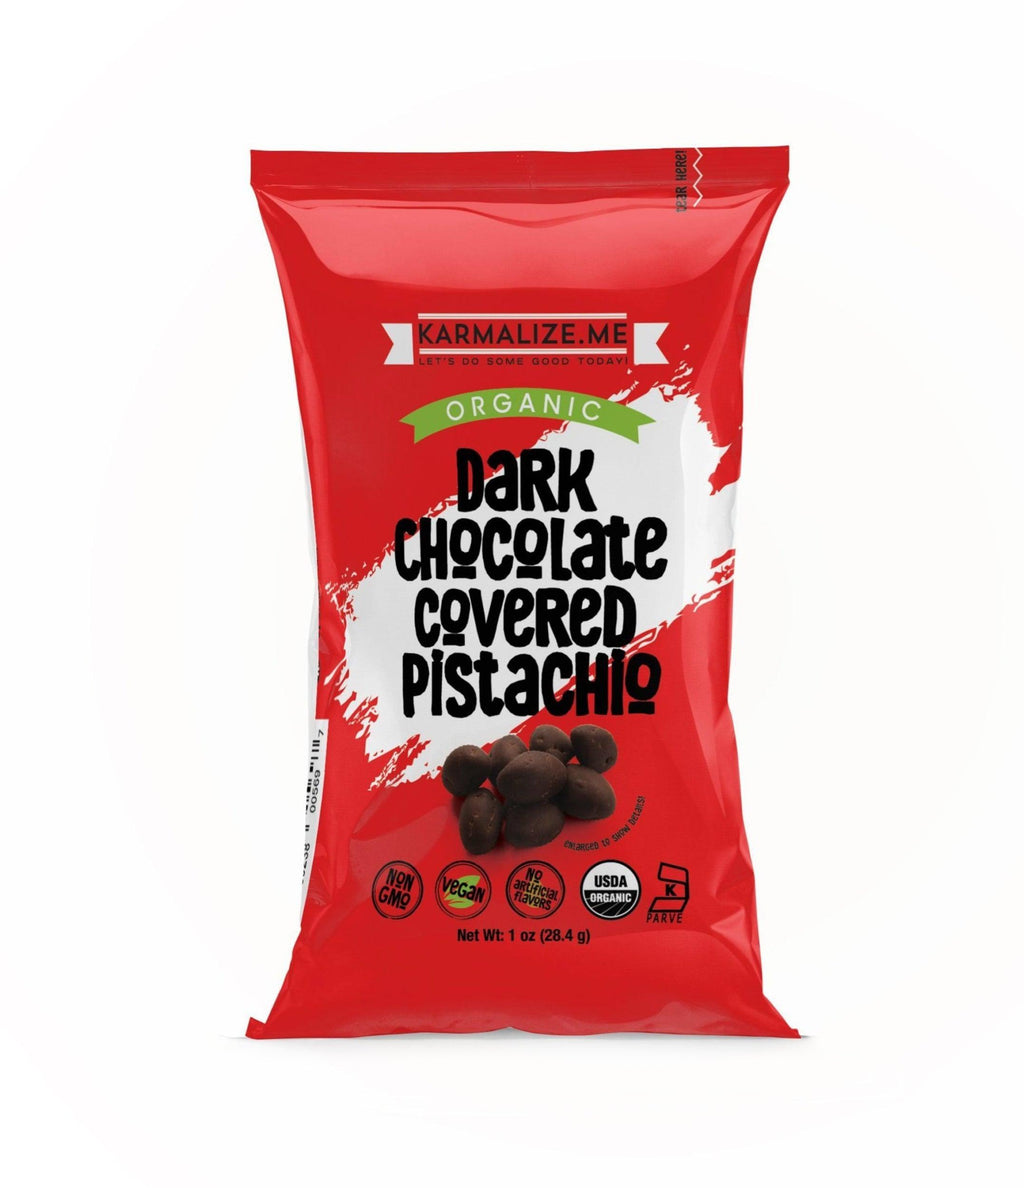 1 oz. Organic Vegan Dark Chocolate Covered Pistachio - Pack of 6.